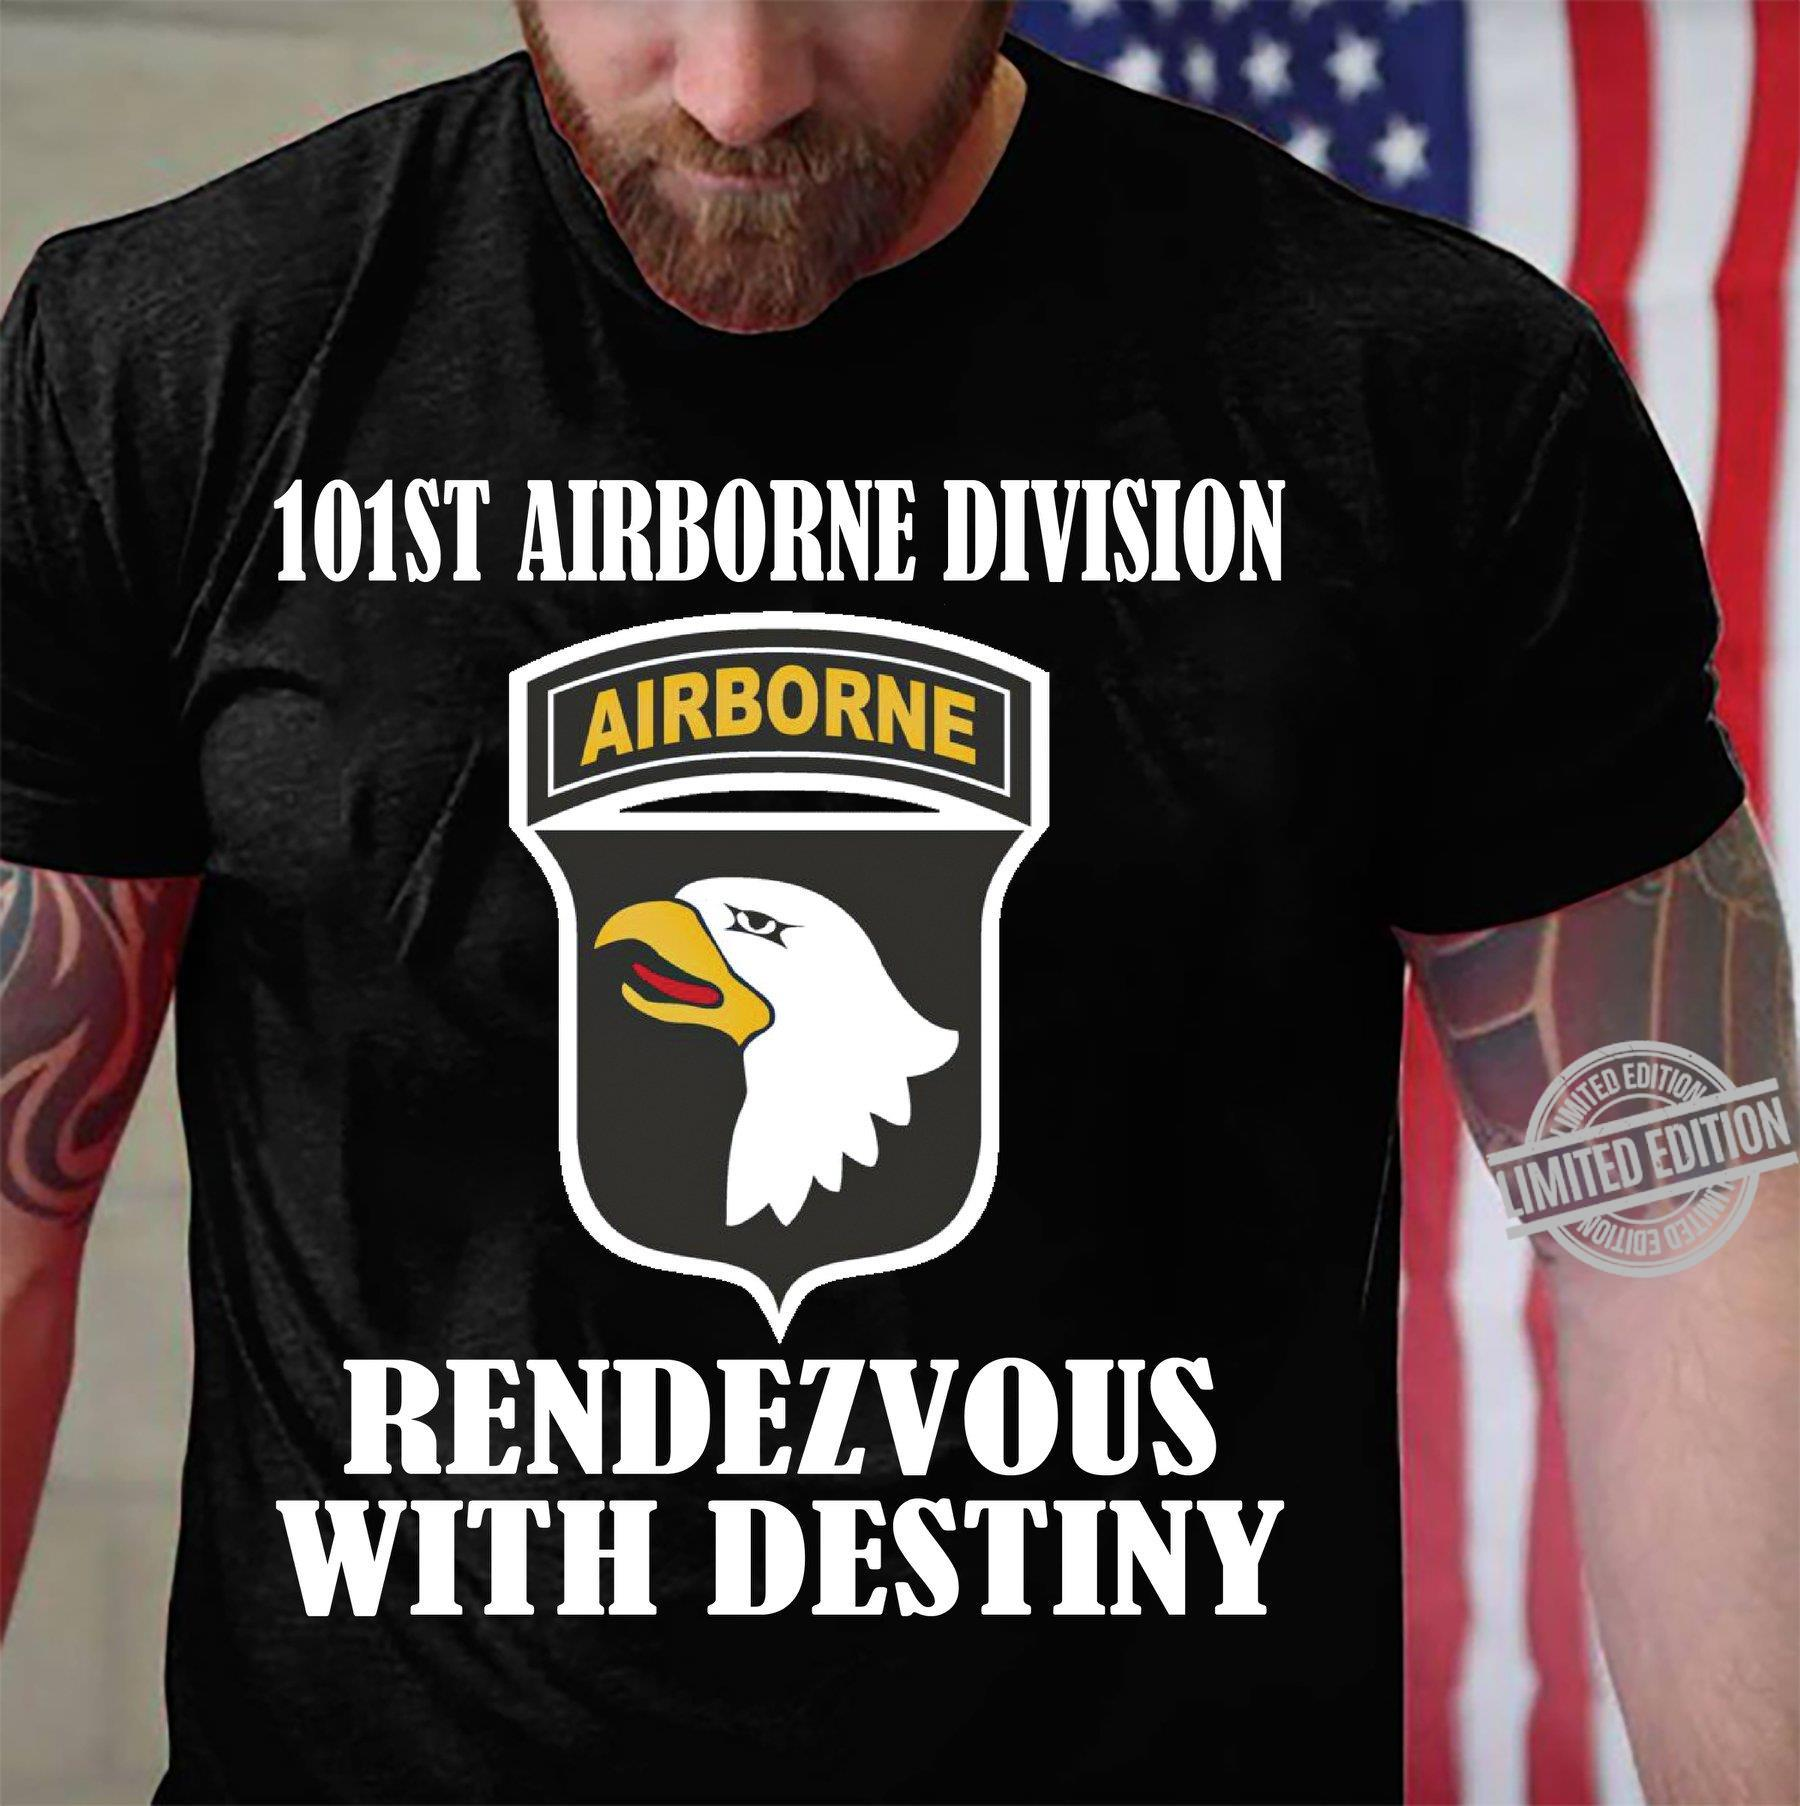 101st Airborne Division Rendezvous With Destiny Shirt